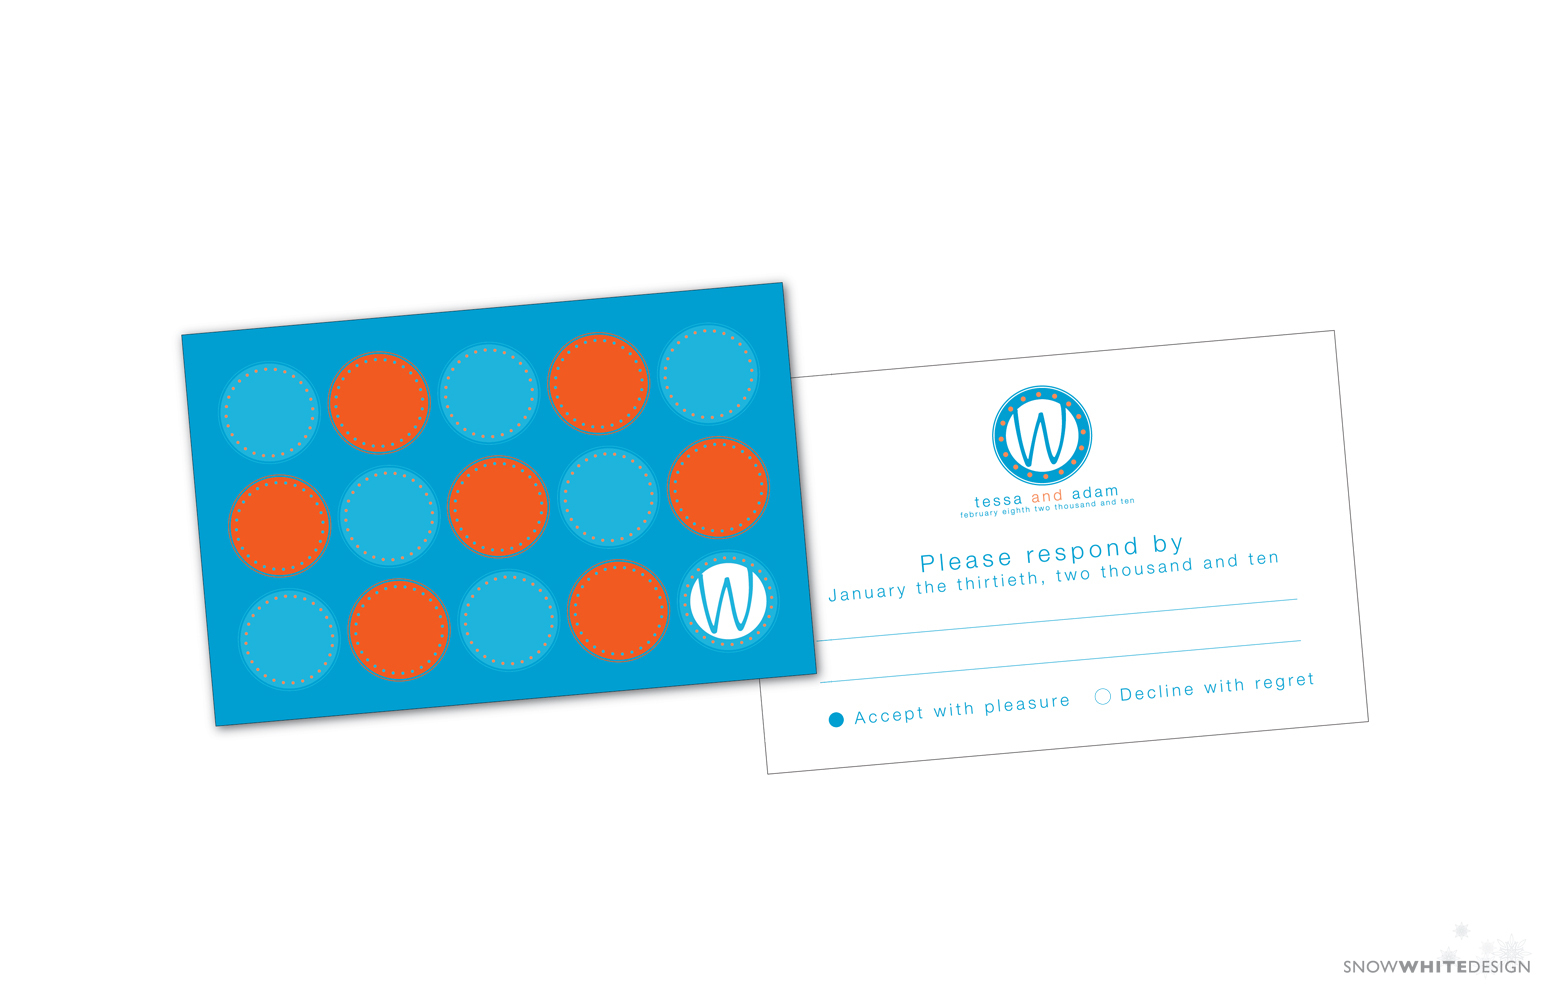 DIY, Stationery, white, orange, blue, invitation, Invitations, Monogram, Pumpkin, Teal, Rsvp, Design, Invite, Snow, Response, Circle, Snow white design